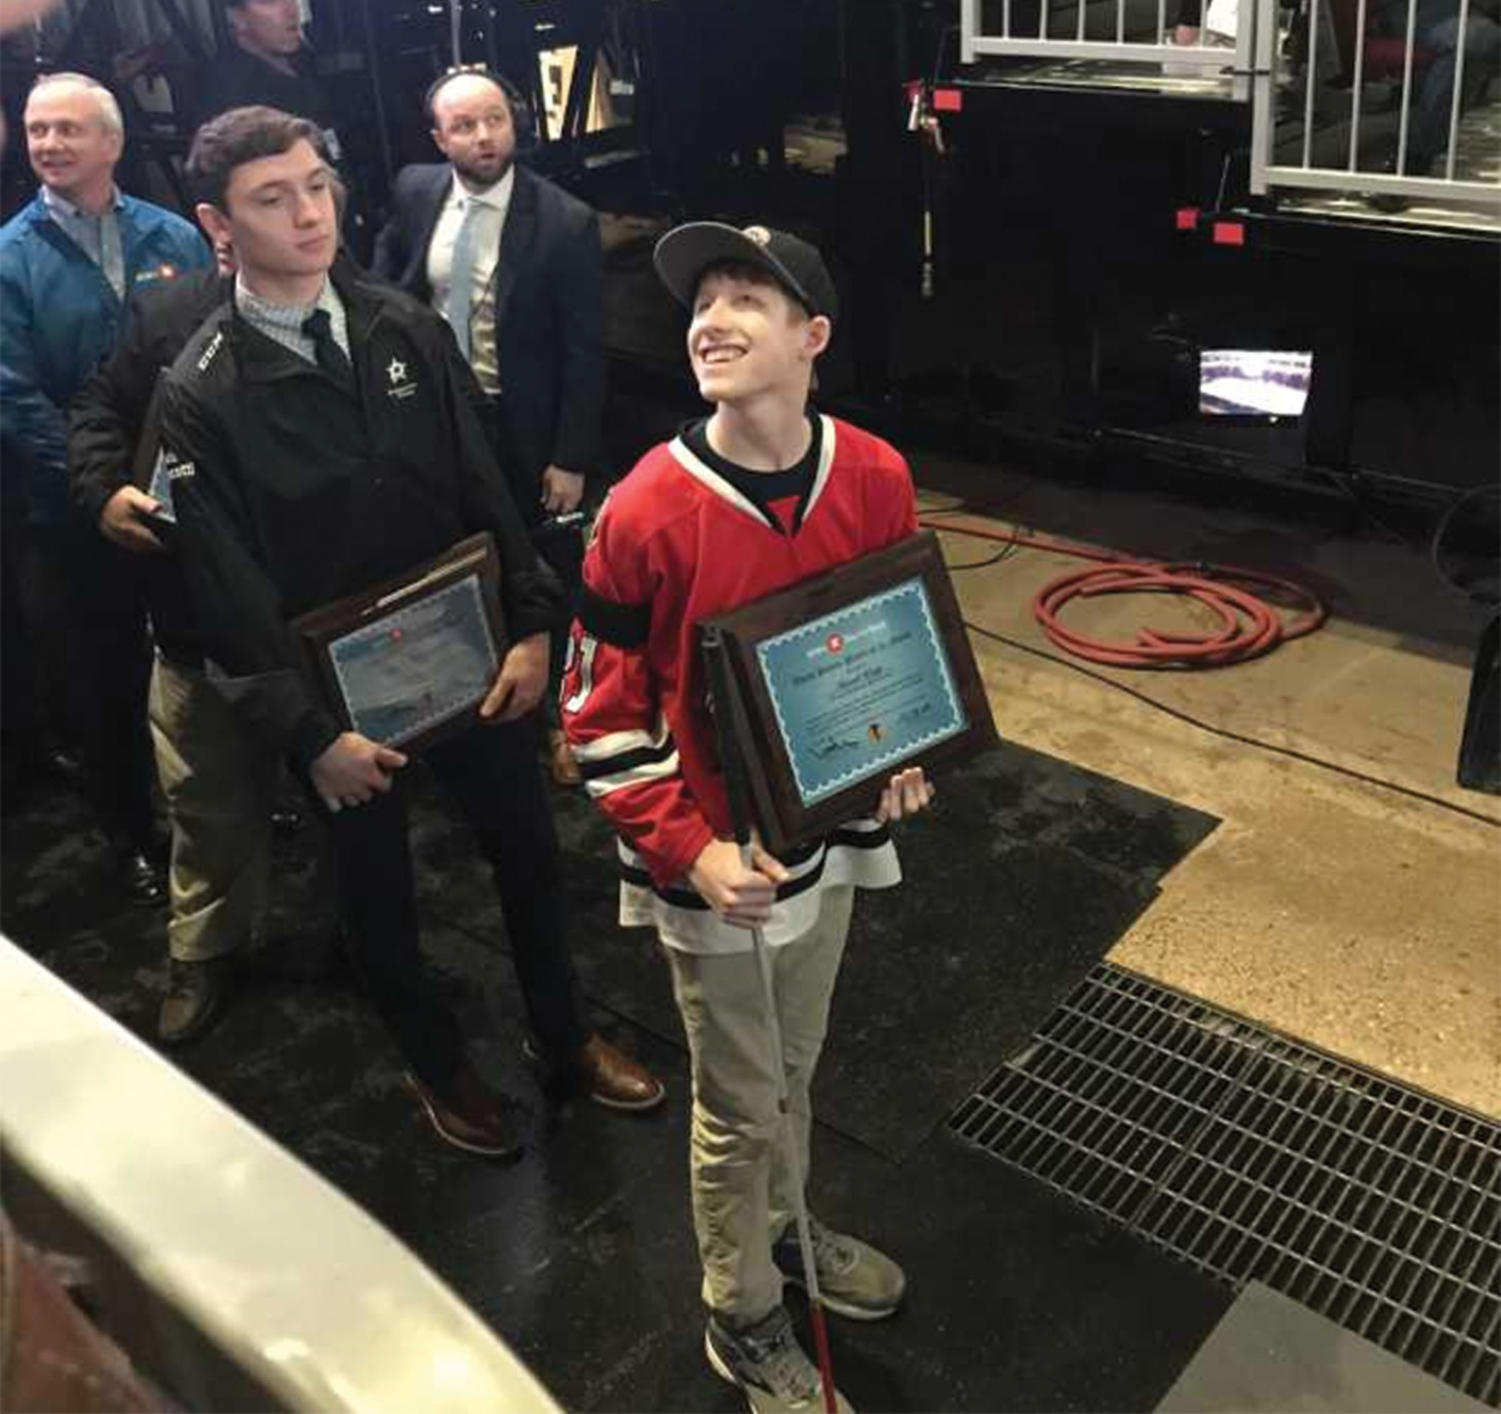 David Kopp '20 was awarded the Youth Player of the Month plaque by the Chicago Blackhawks on the Ice of the United Center Feb. 22. (Photos provided by Keeve)